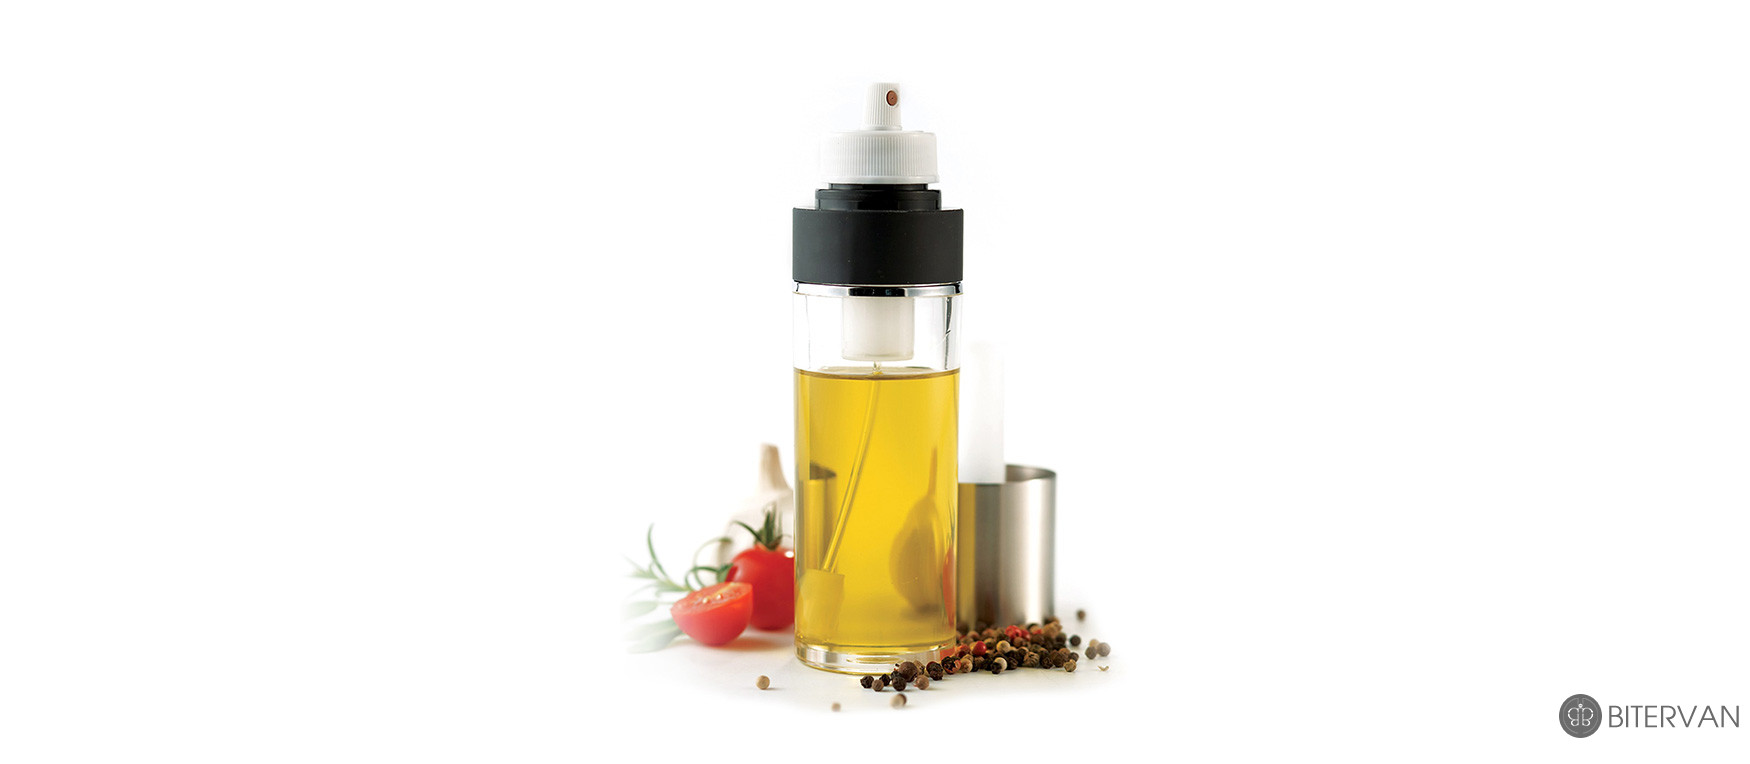 Thinkkitchen Family- REMY OLIVIER OIL SPRAYER SS/ ABS ASST